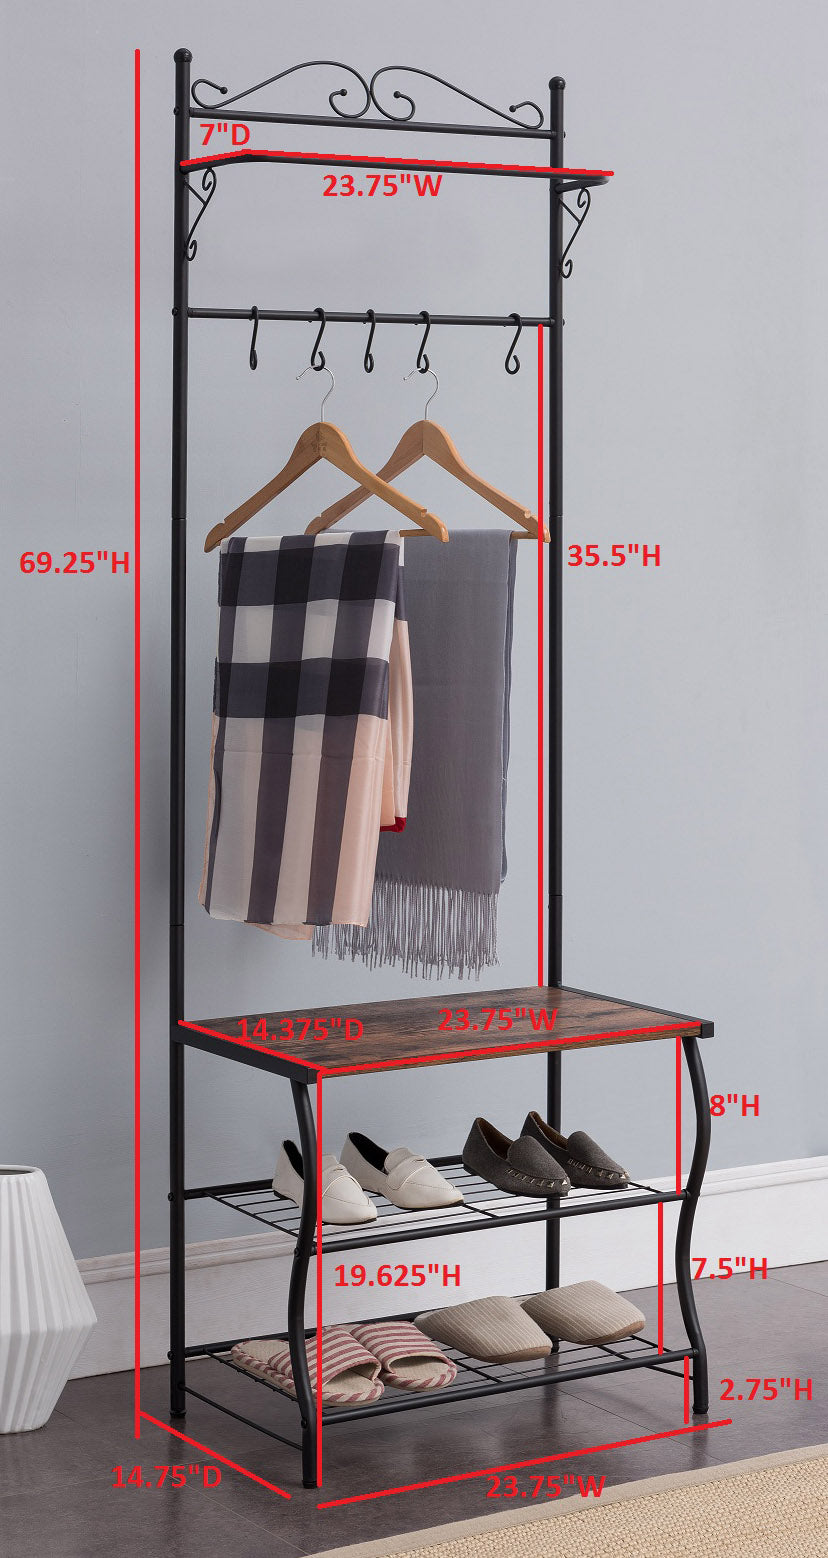 hook racks fremont entryway p shelf prepac the rack mounted espresso coat eec wall in